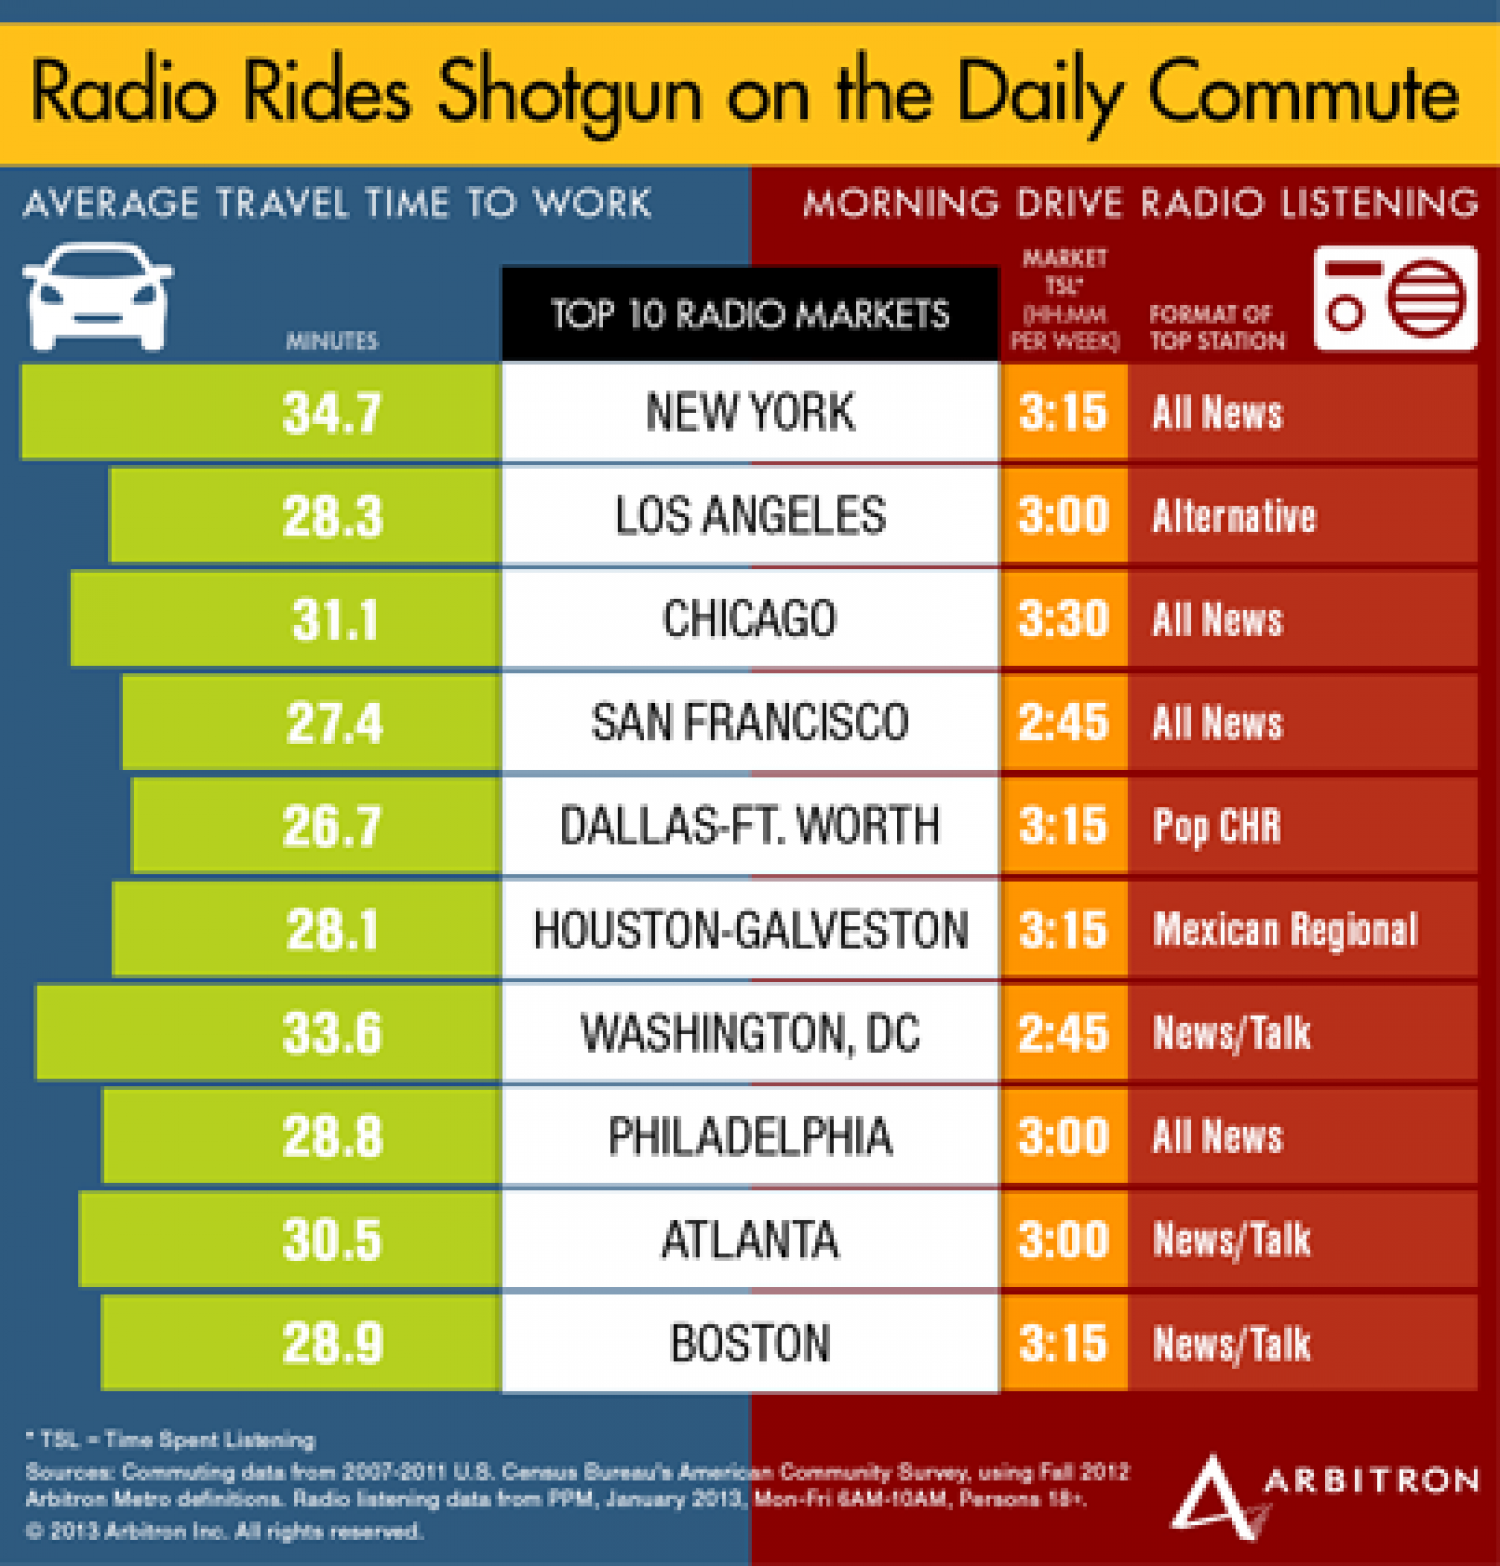 Radio Rides Shotgun on the Daily Commute Infographic